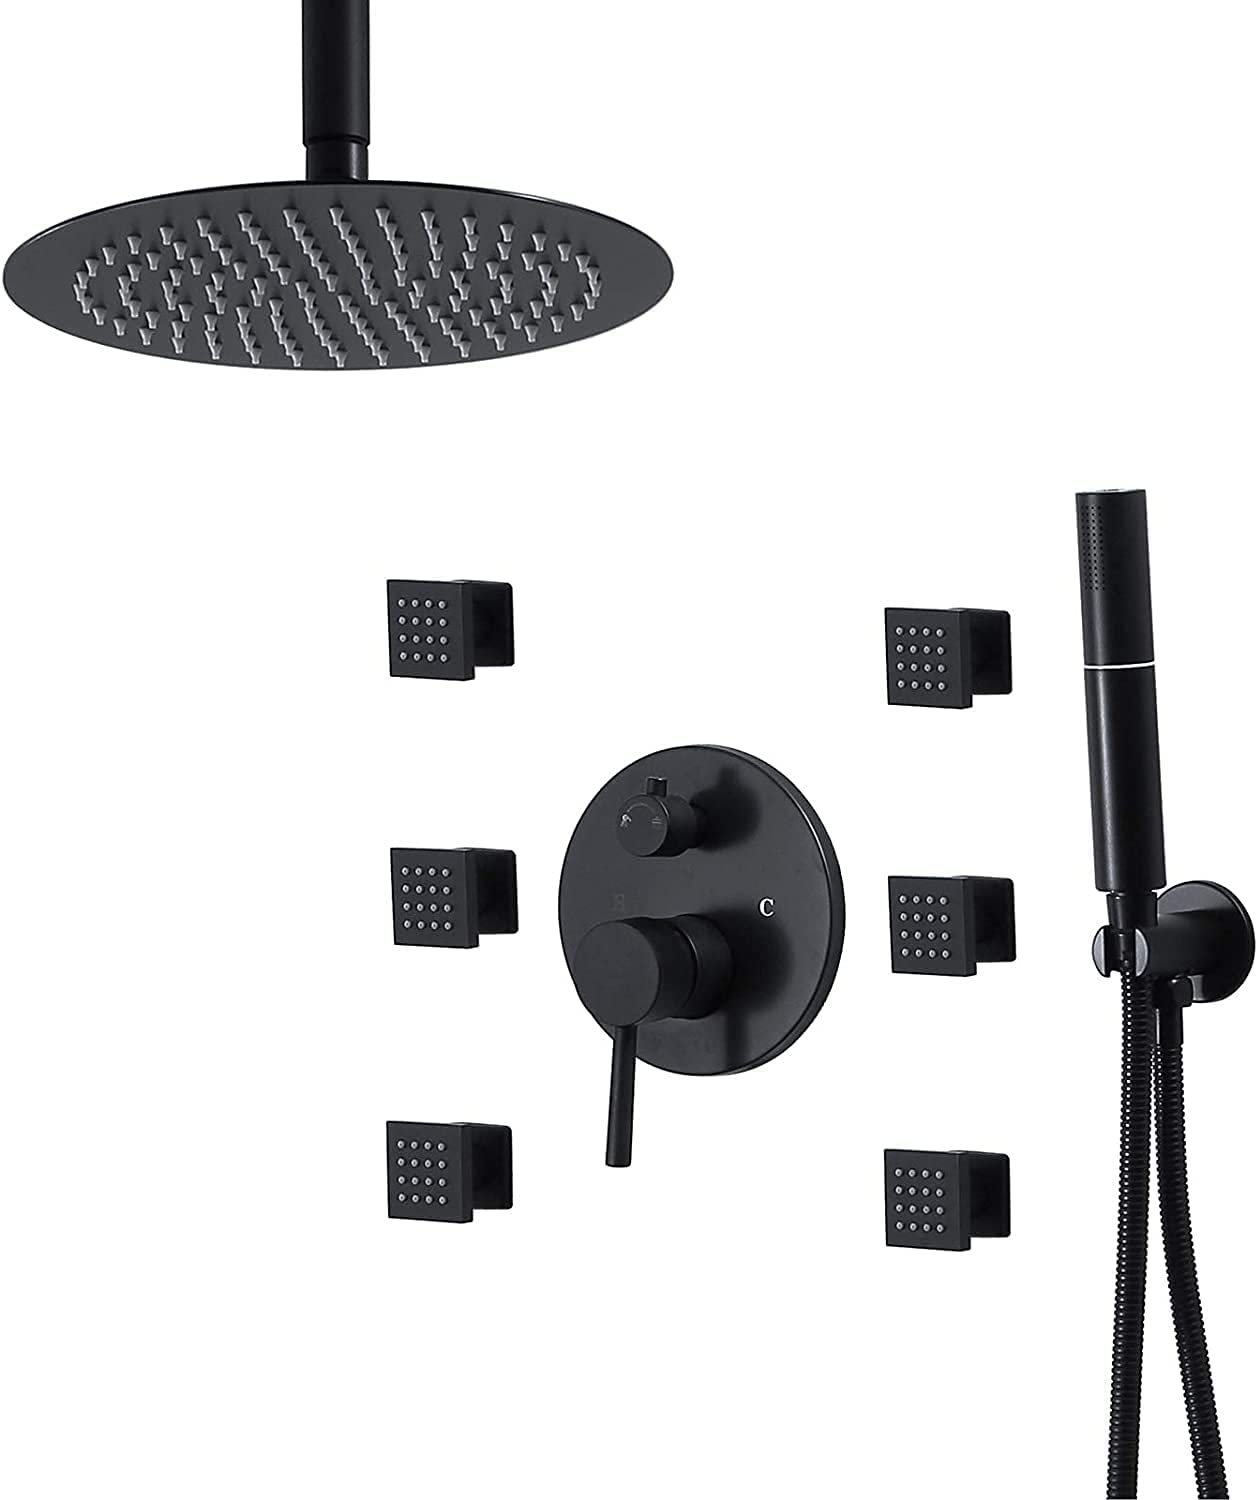 LSNLNN Rain Shower System Ceiling Max 83% OFF Mixer Bathroom Mounted Genuine Free Shipping S